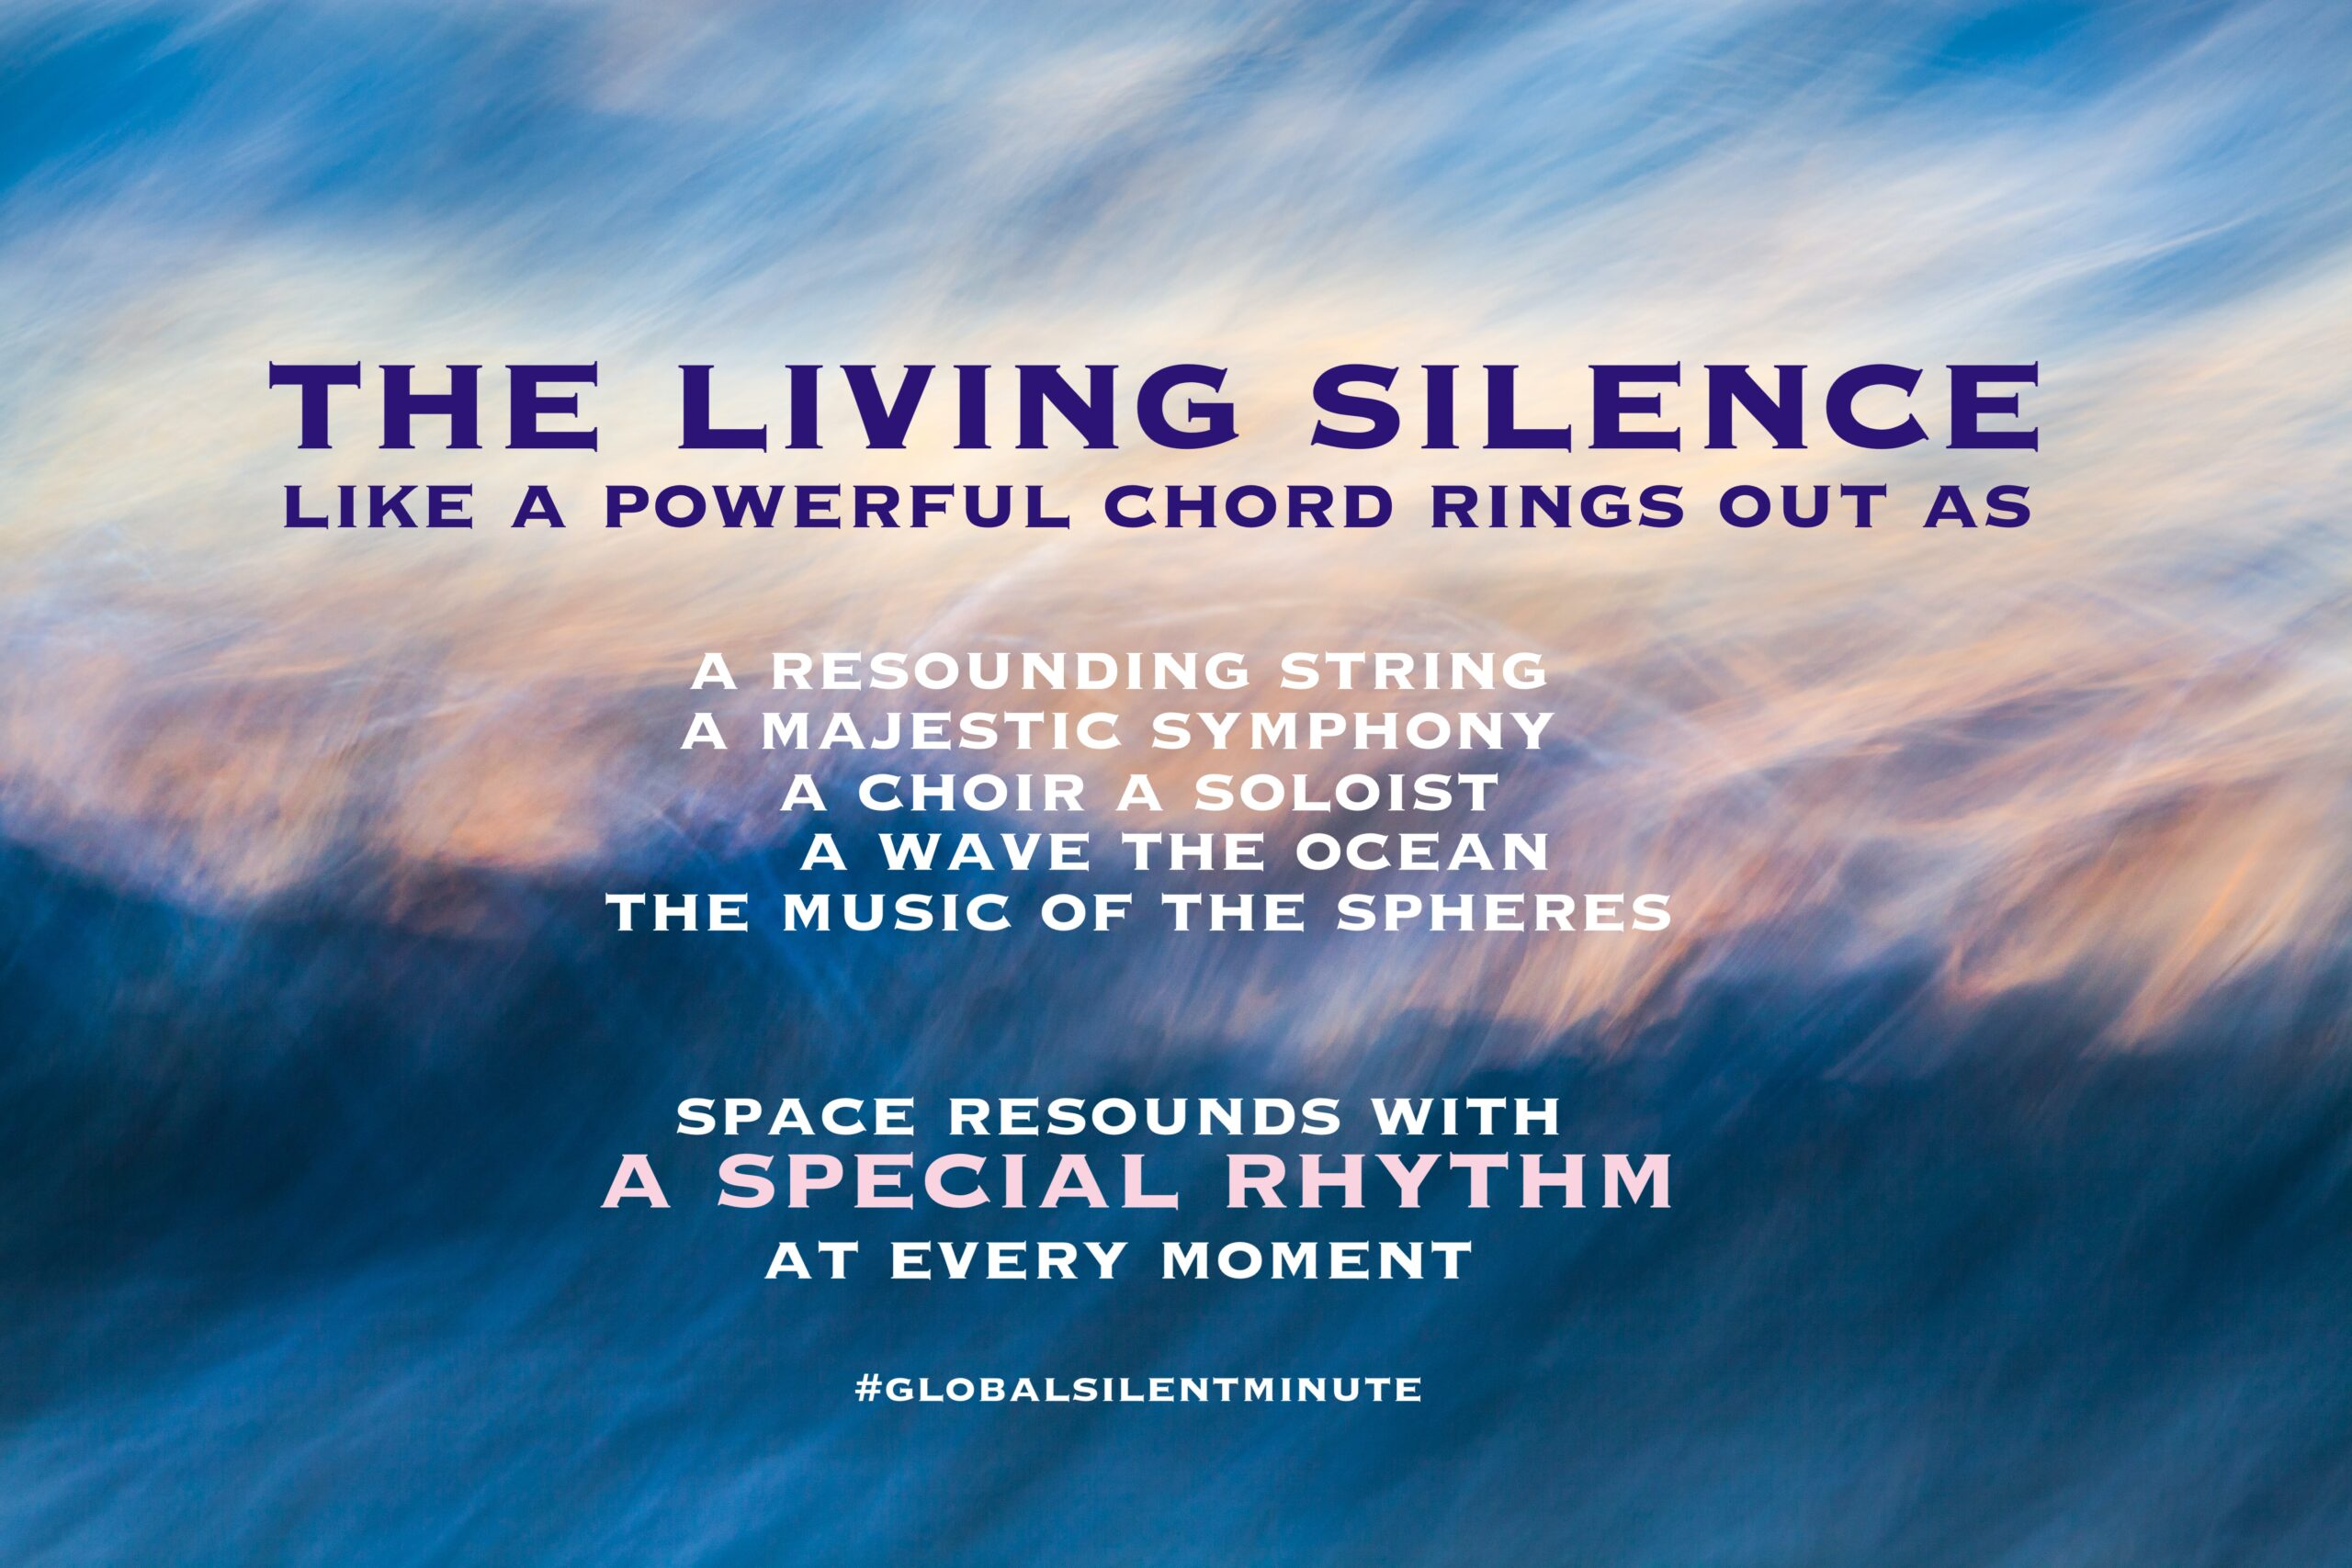 18.The Living Silence like a powerful chord